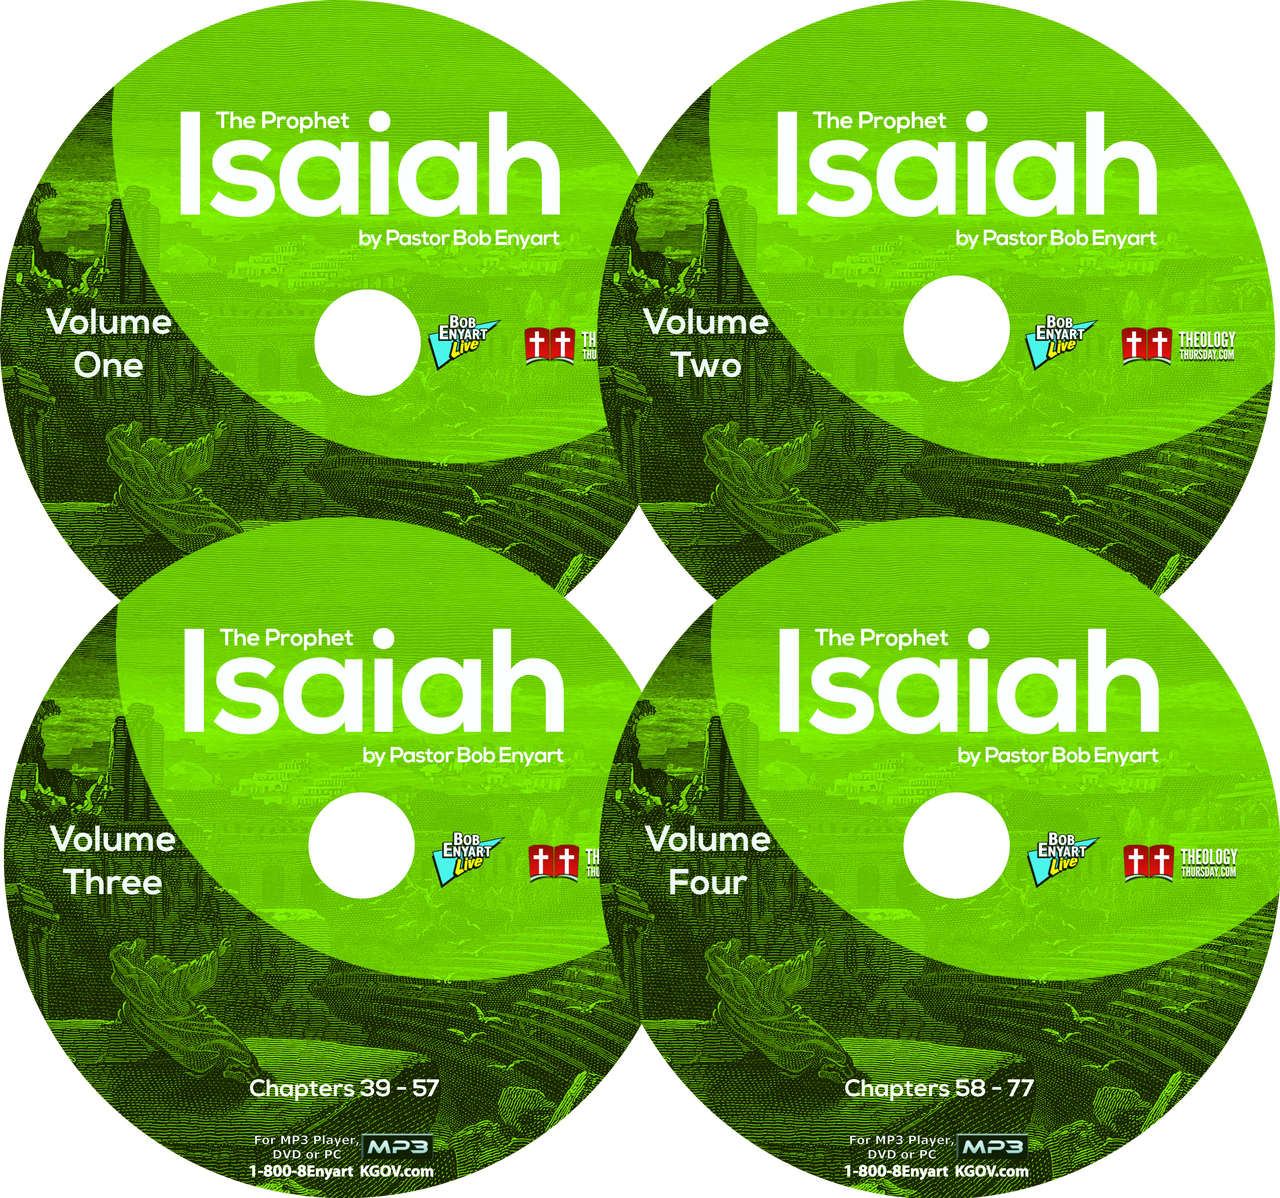 Image of the four MP3 CDs of Bob Enyart's Isaiah series